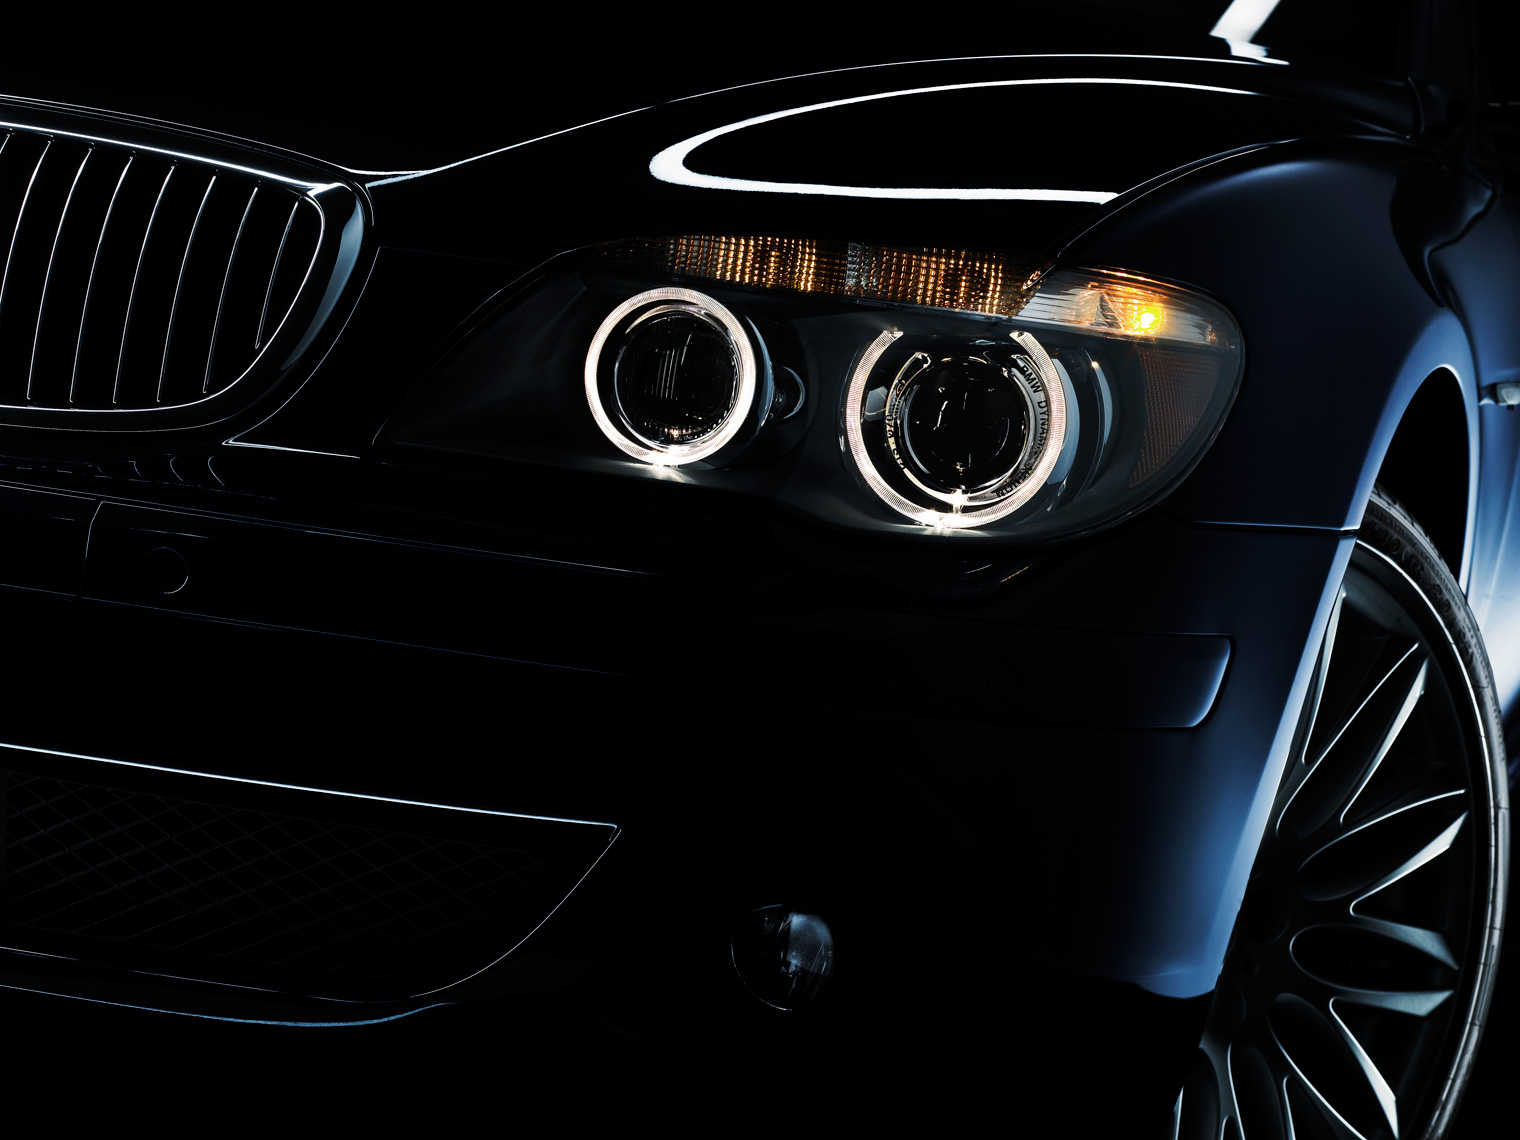 BMW_Headlightcropcurv3copy.jpg